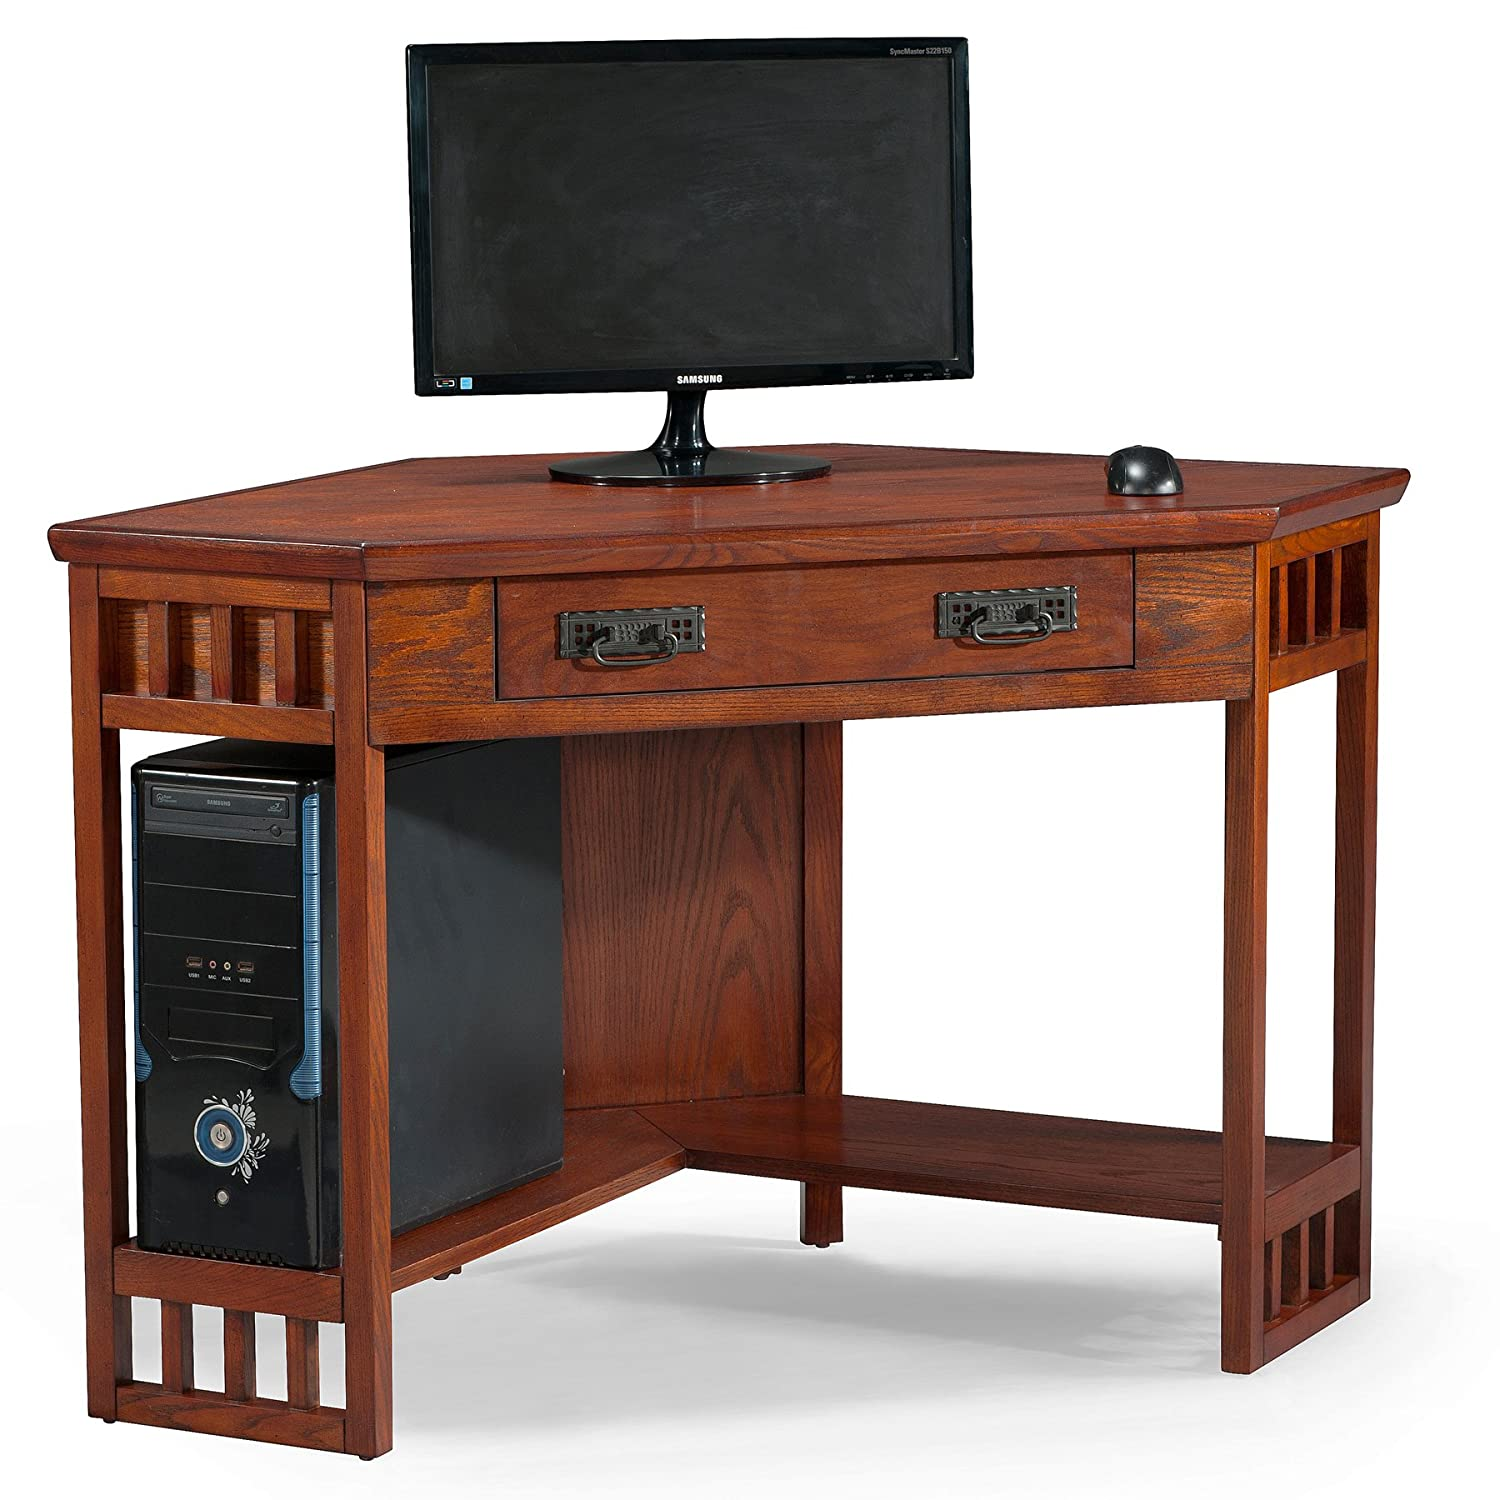 Oak office desk benefits for home office - Amazon Com Leick Corner Computer And Writing Desk Mission Oak Finish Kitchen Dining